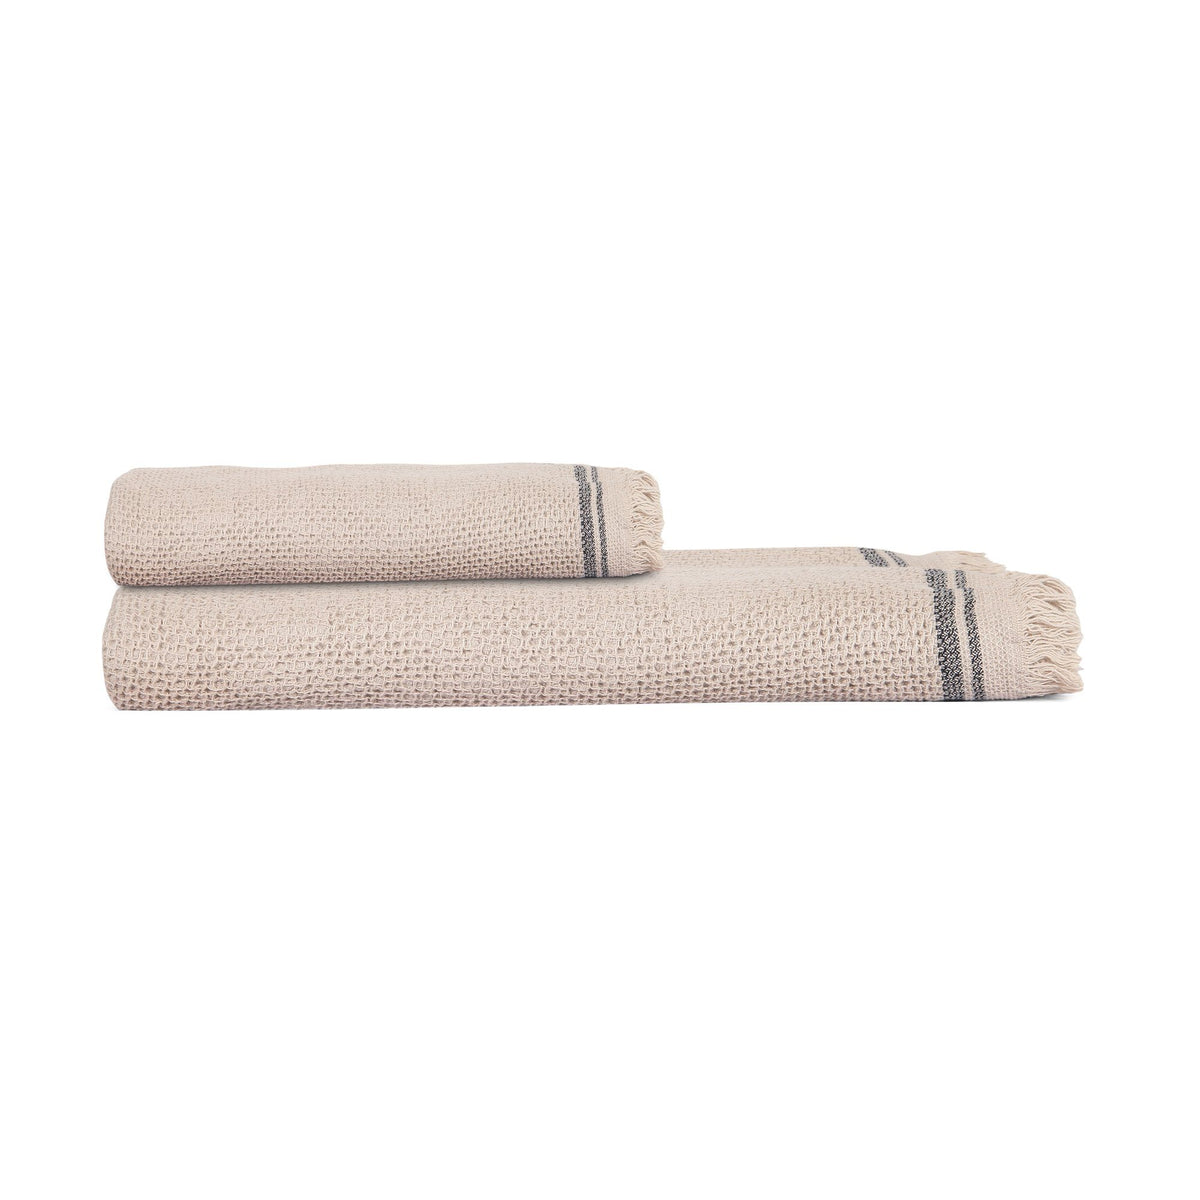 Lush Loom Turkish Towel Set